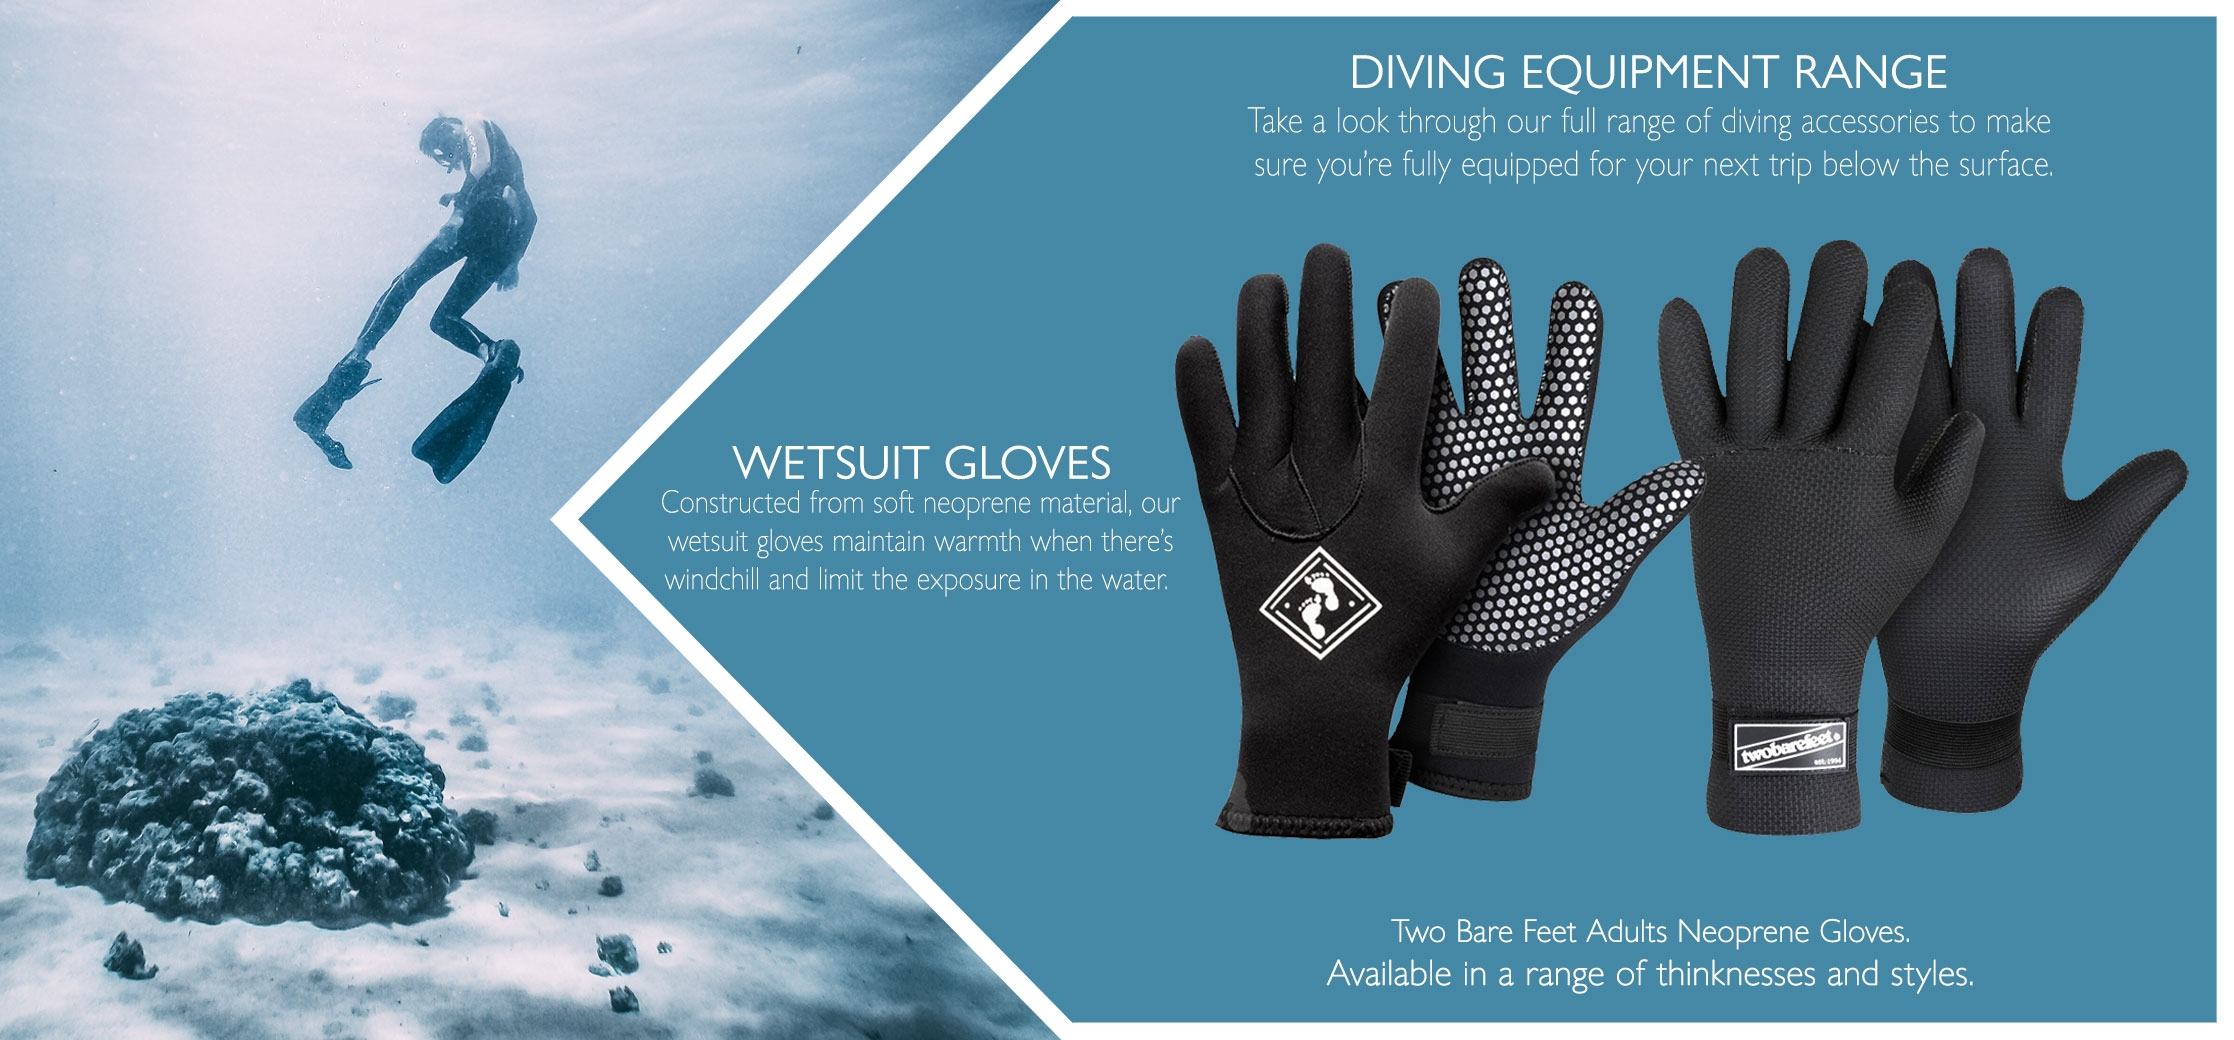 Wetsuit gloves types